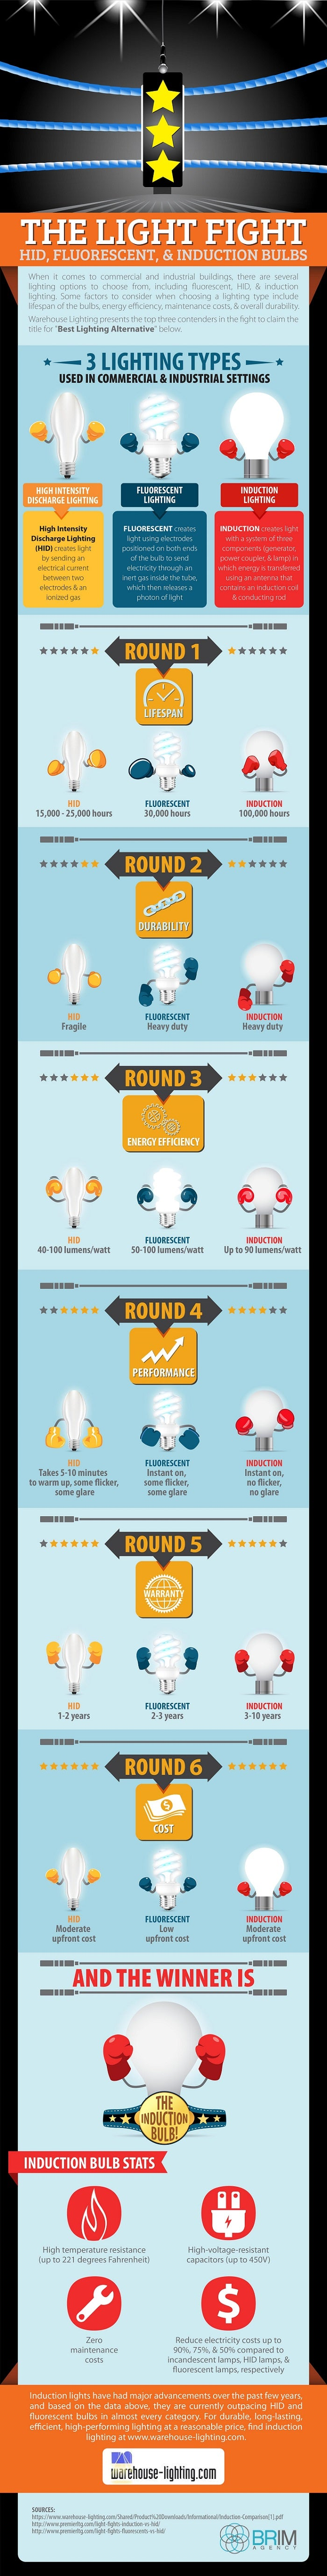 The Light Fight HID, Fluorescent, & Induction Bulbs [INFOGRAPHIC]